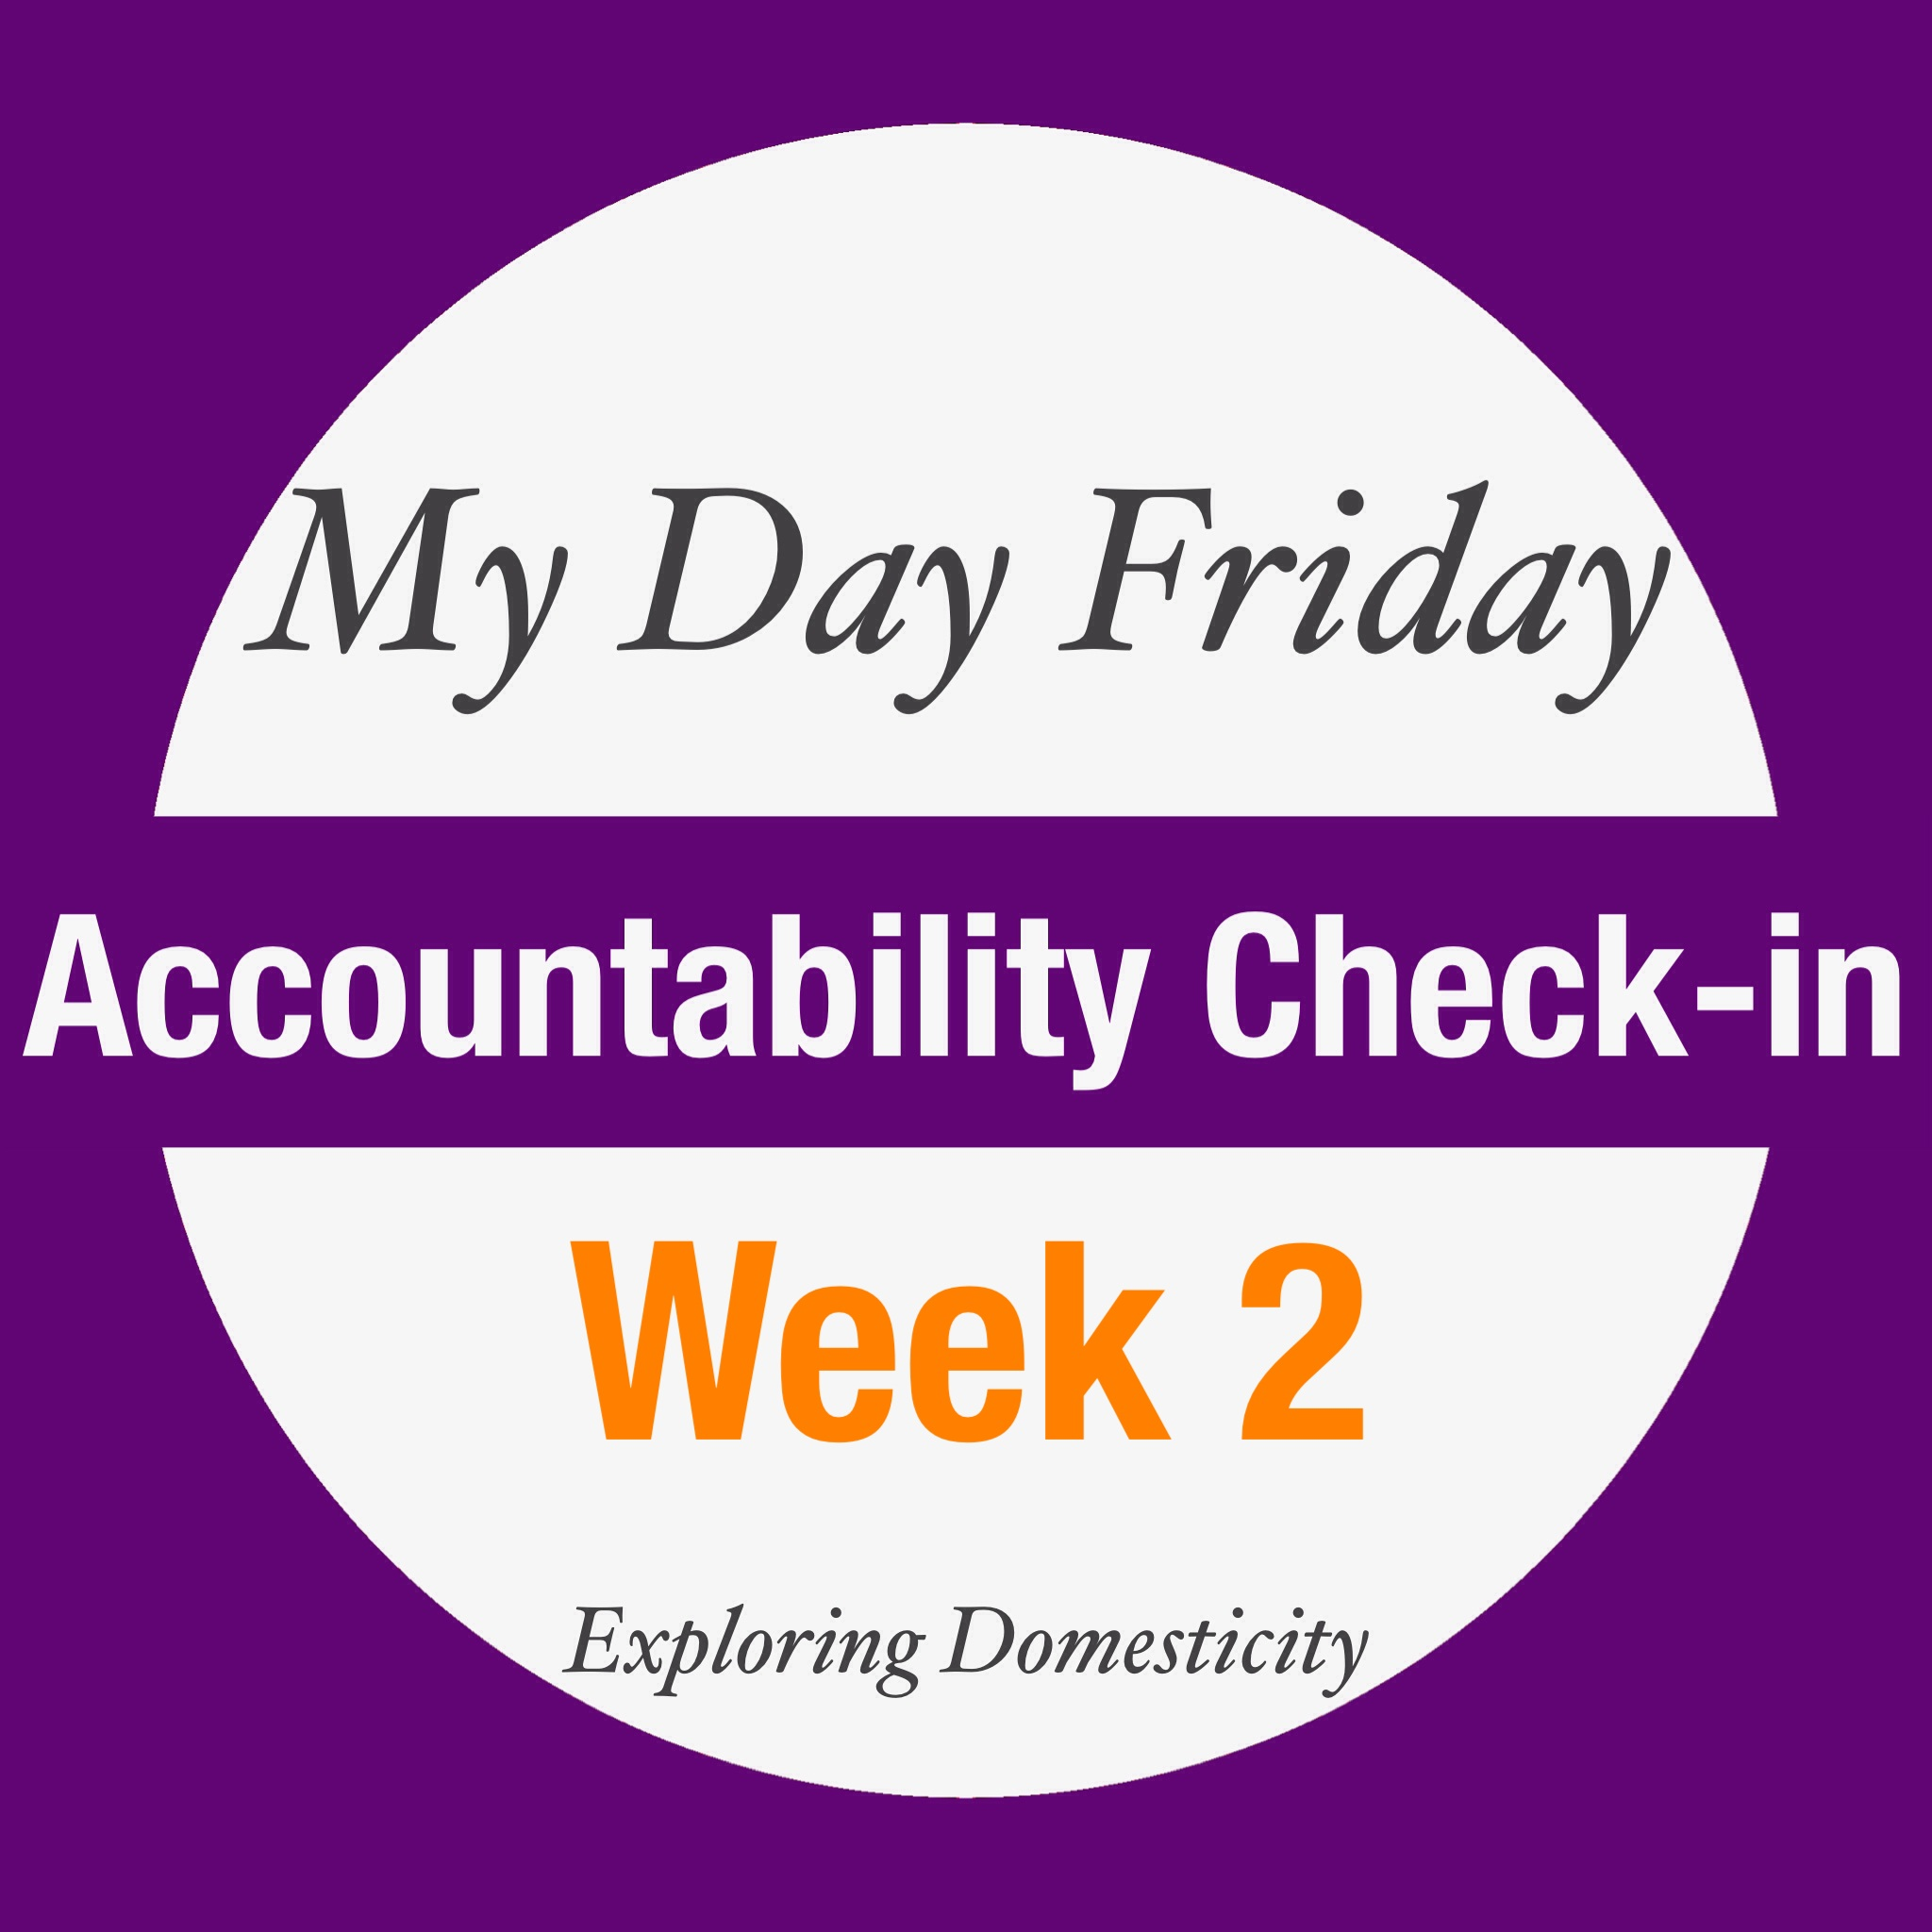 My Day Friday Accountability Check-in: week 2